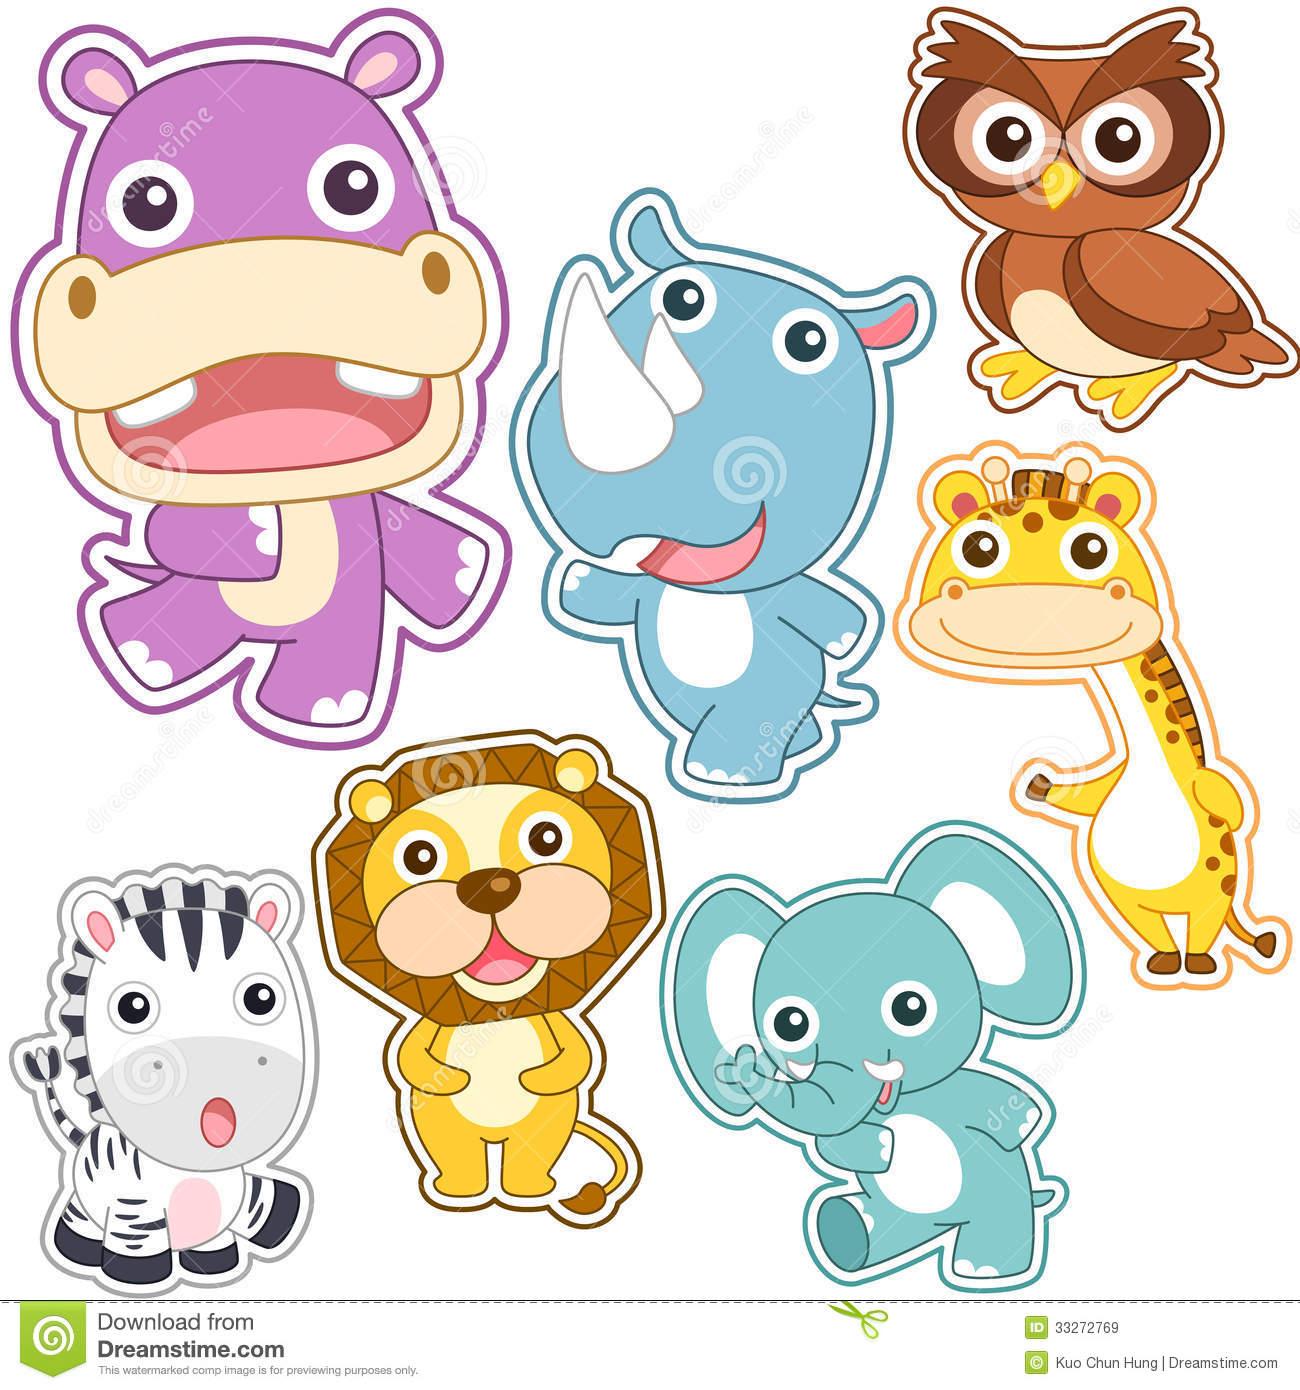 Cute cartoon animal set stock vector. Illustration of ...